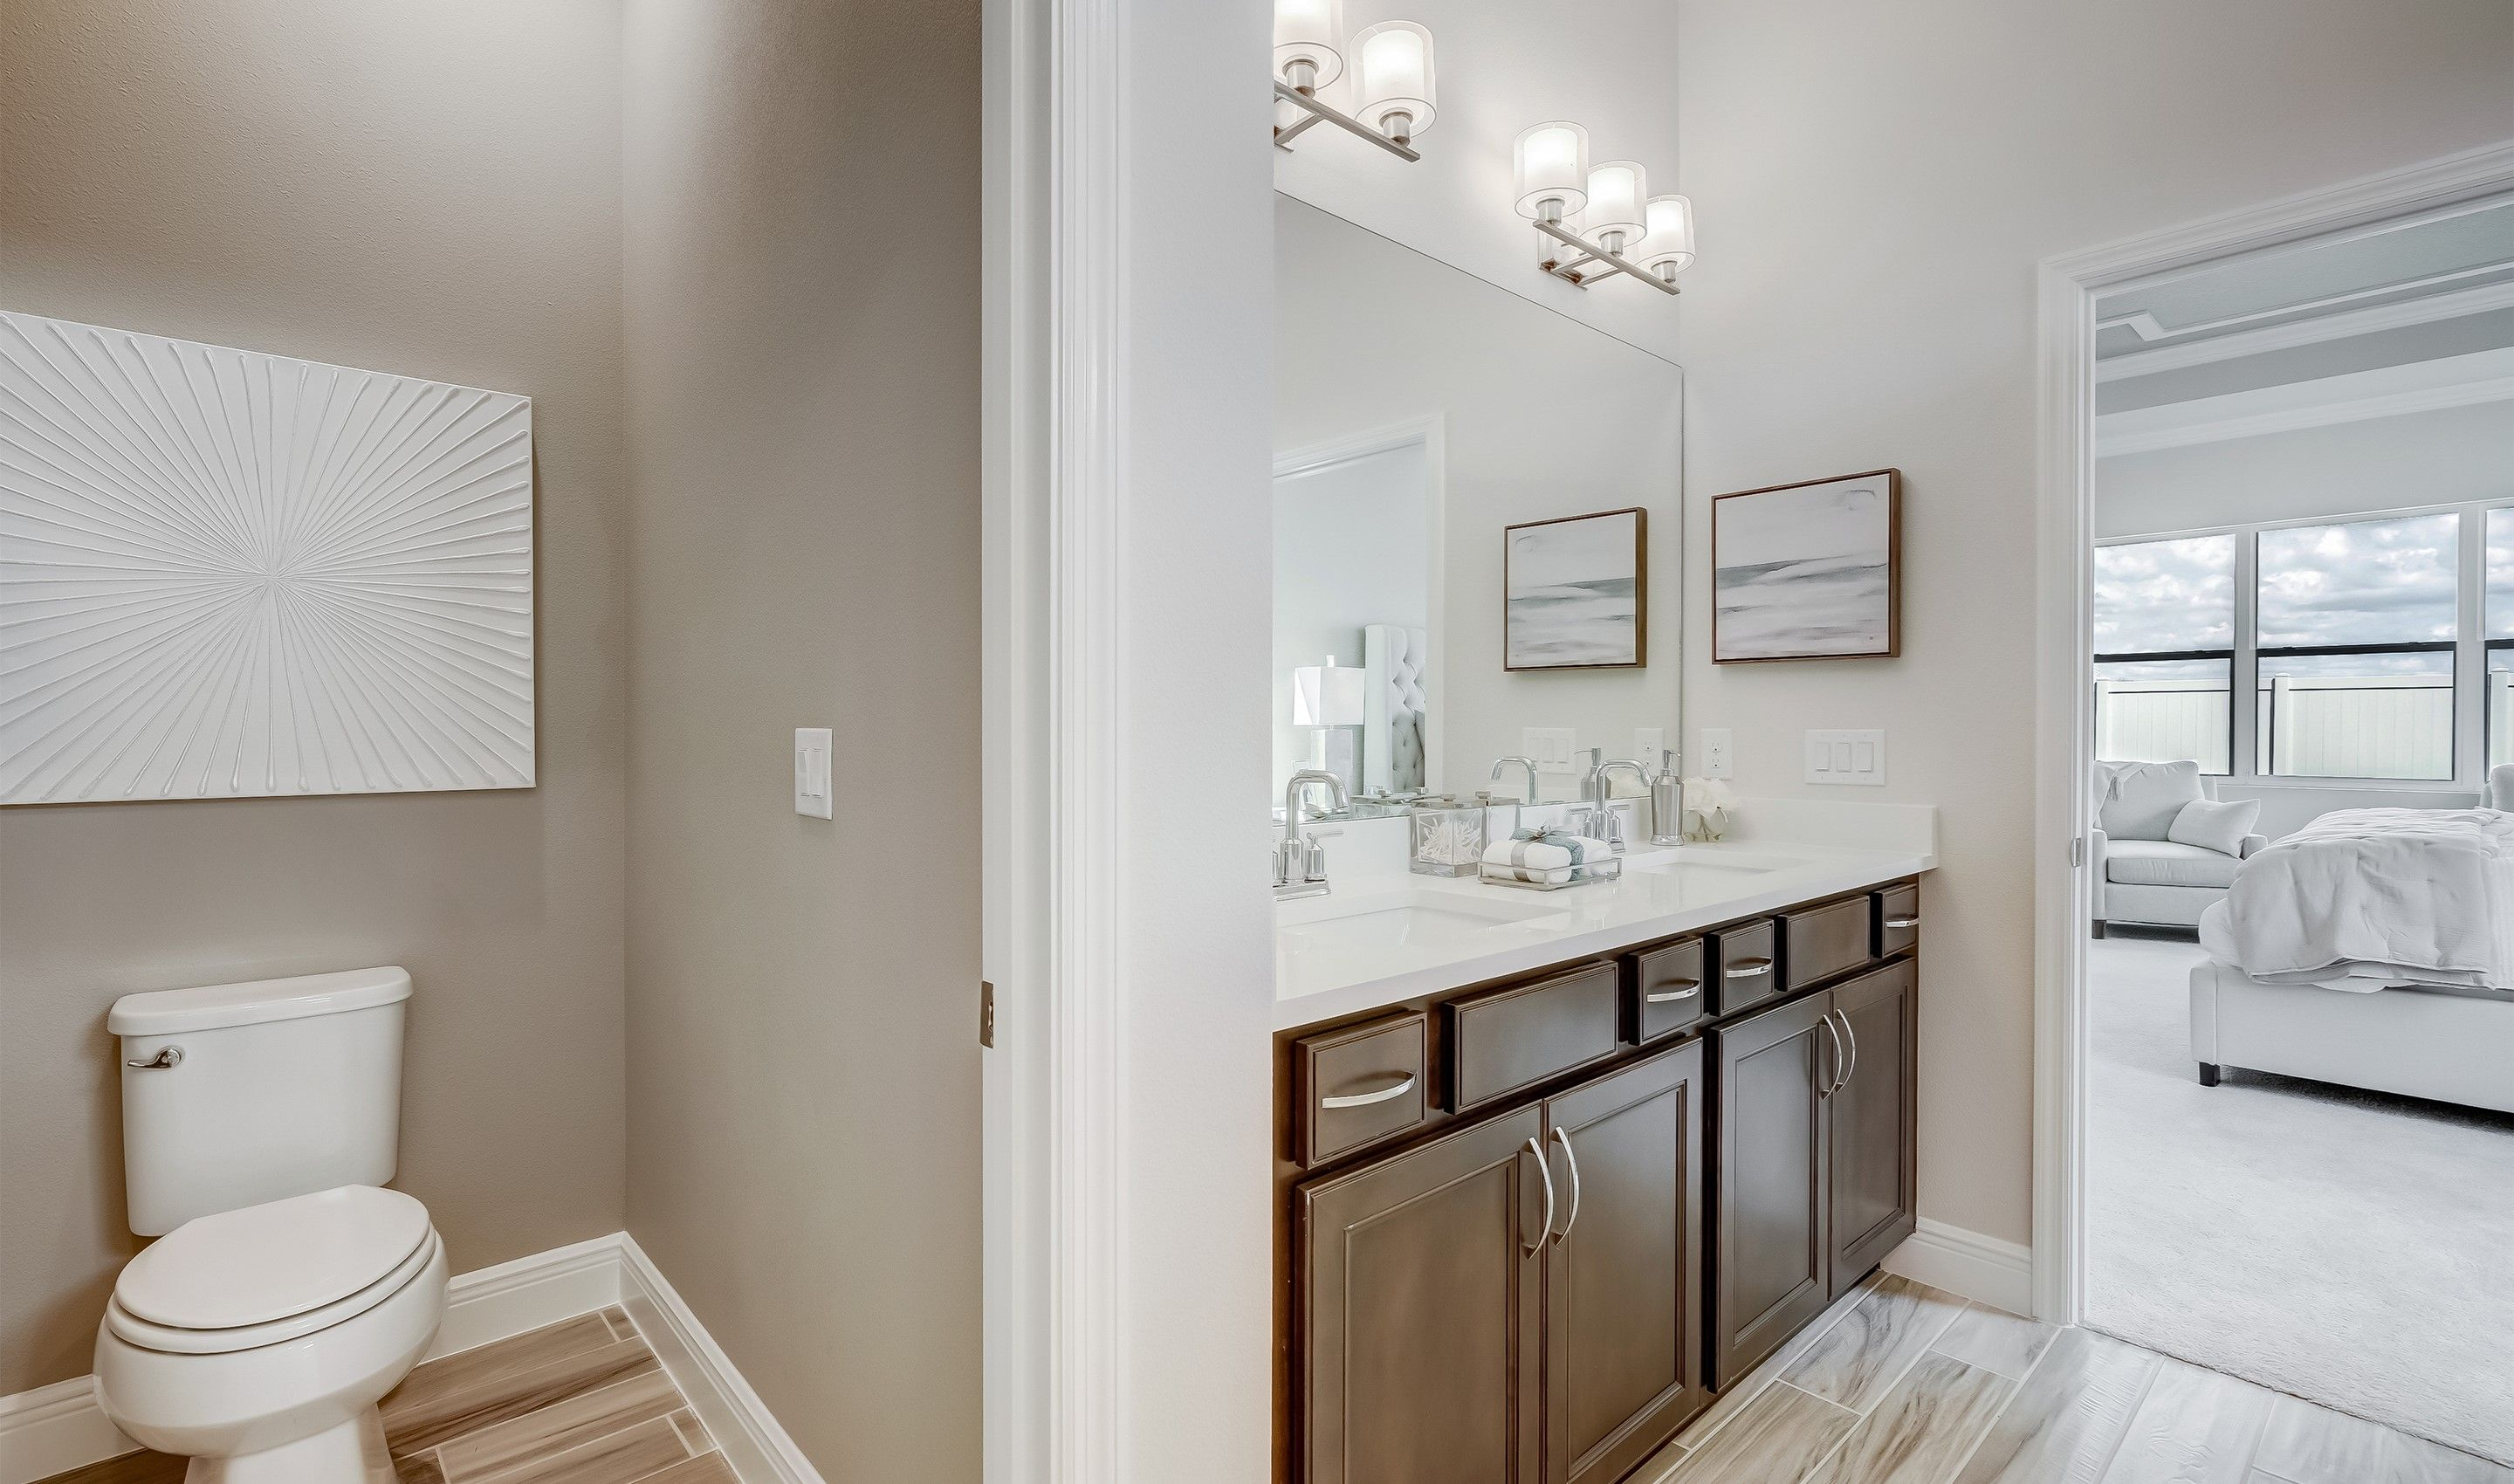 Bathroom featured in the Saint Lucia By K. Hovnanian® Homes in Orlando, FL